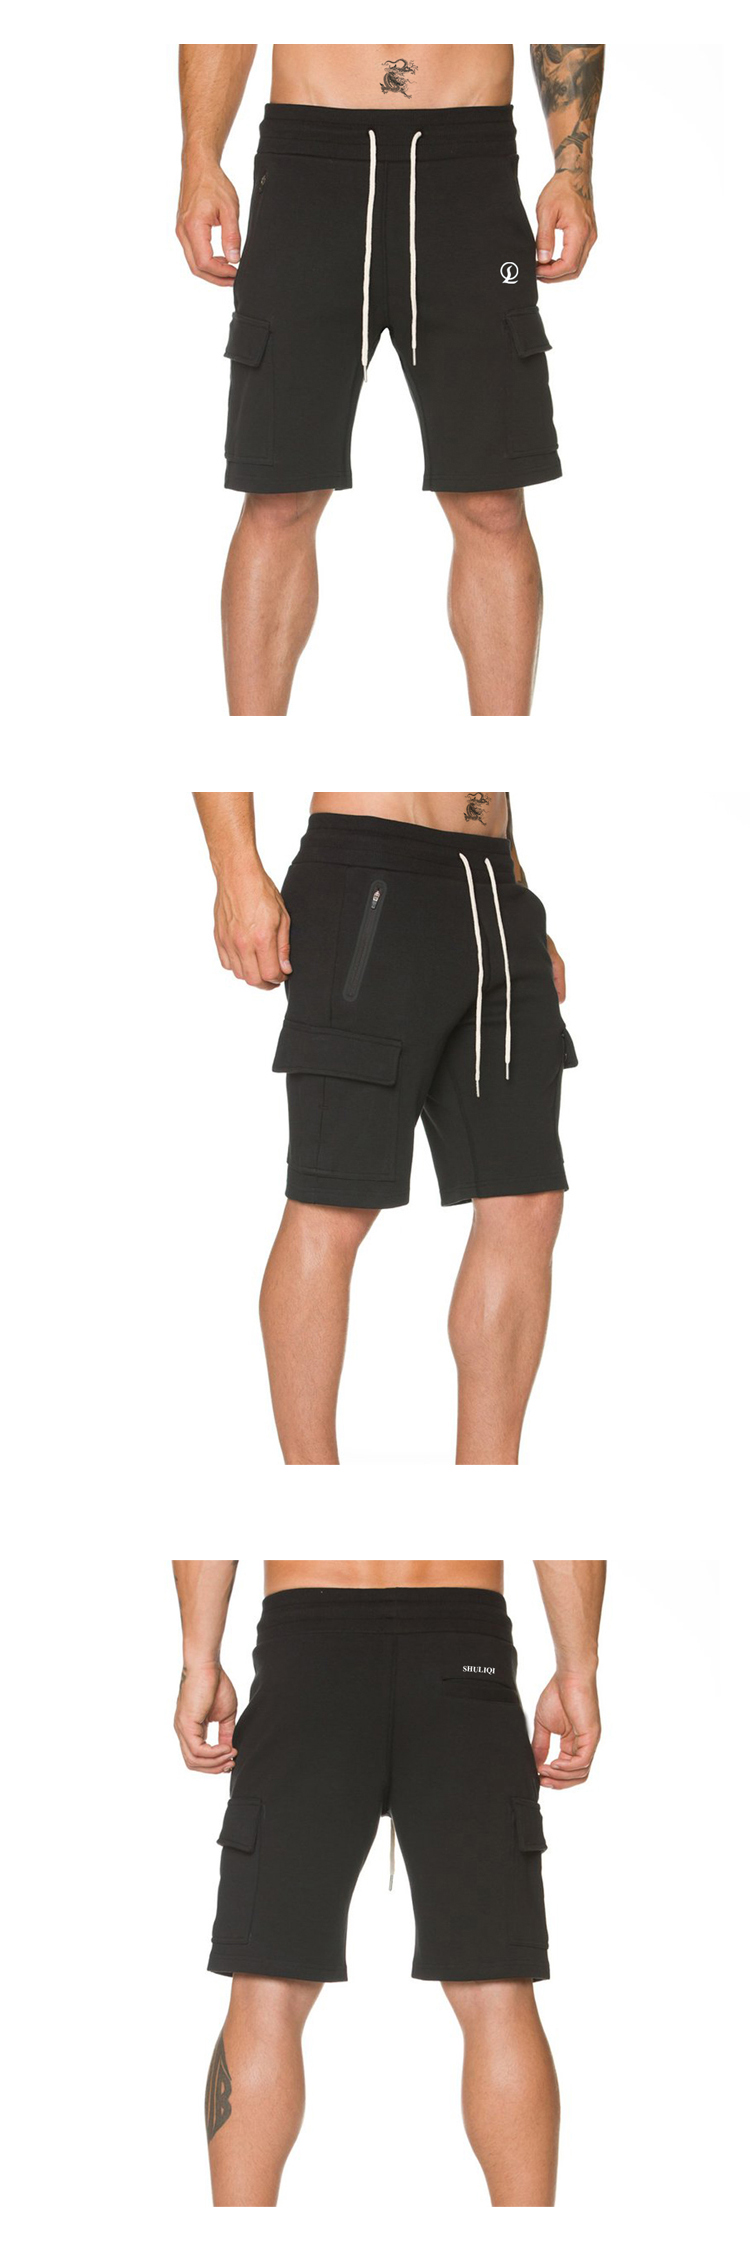 Tech fleece gym shorts zippered cargo pockets 65% cotton 35% polyester sweat shorts